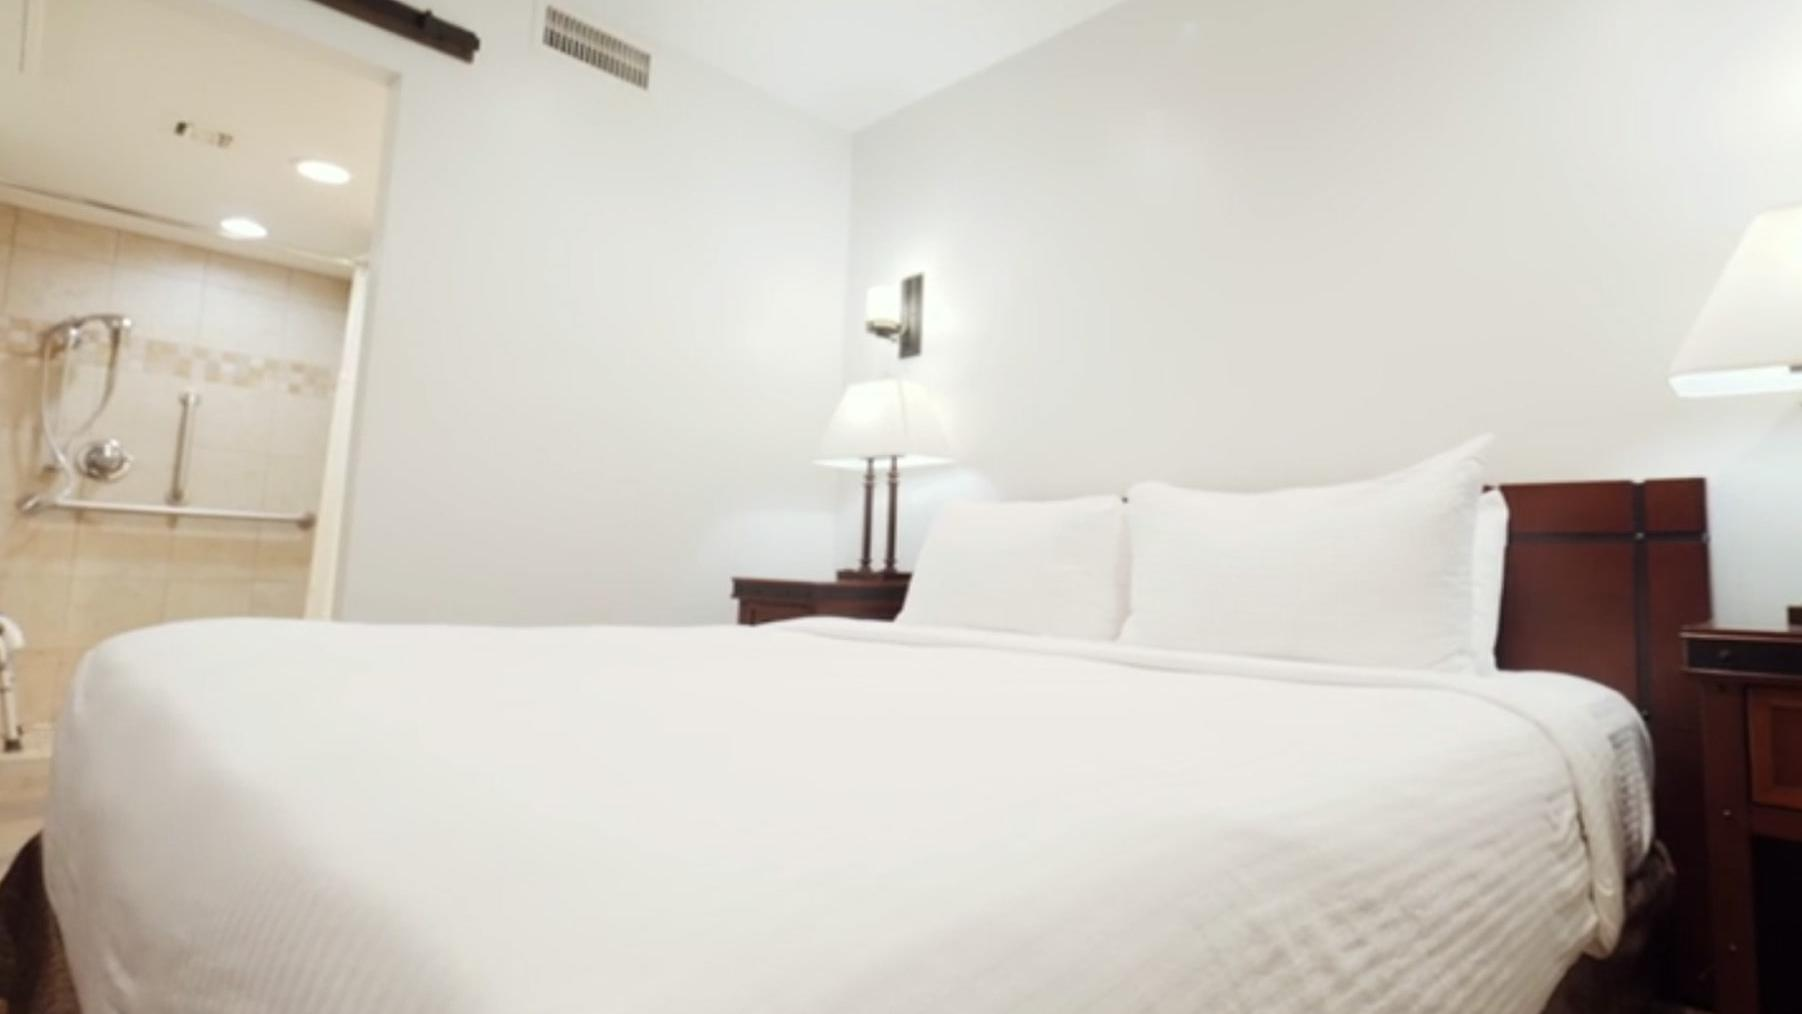 Hotel room with king-size bed with white sheets and standup shower